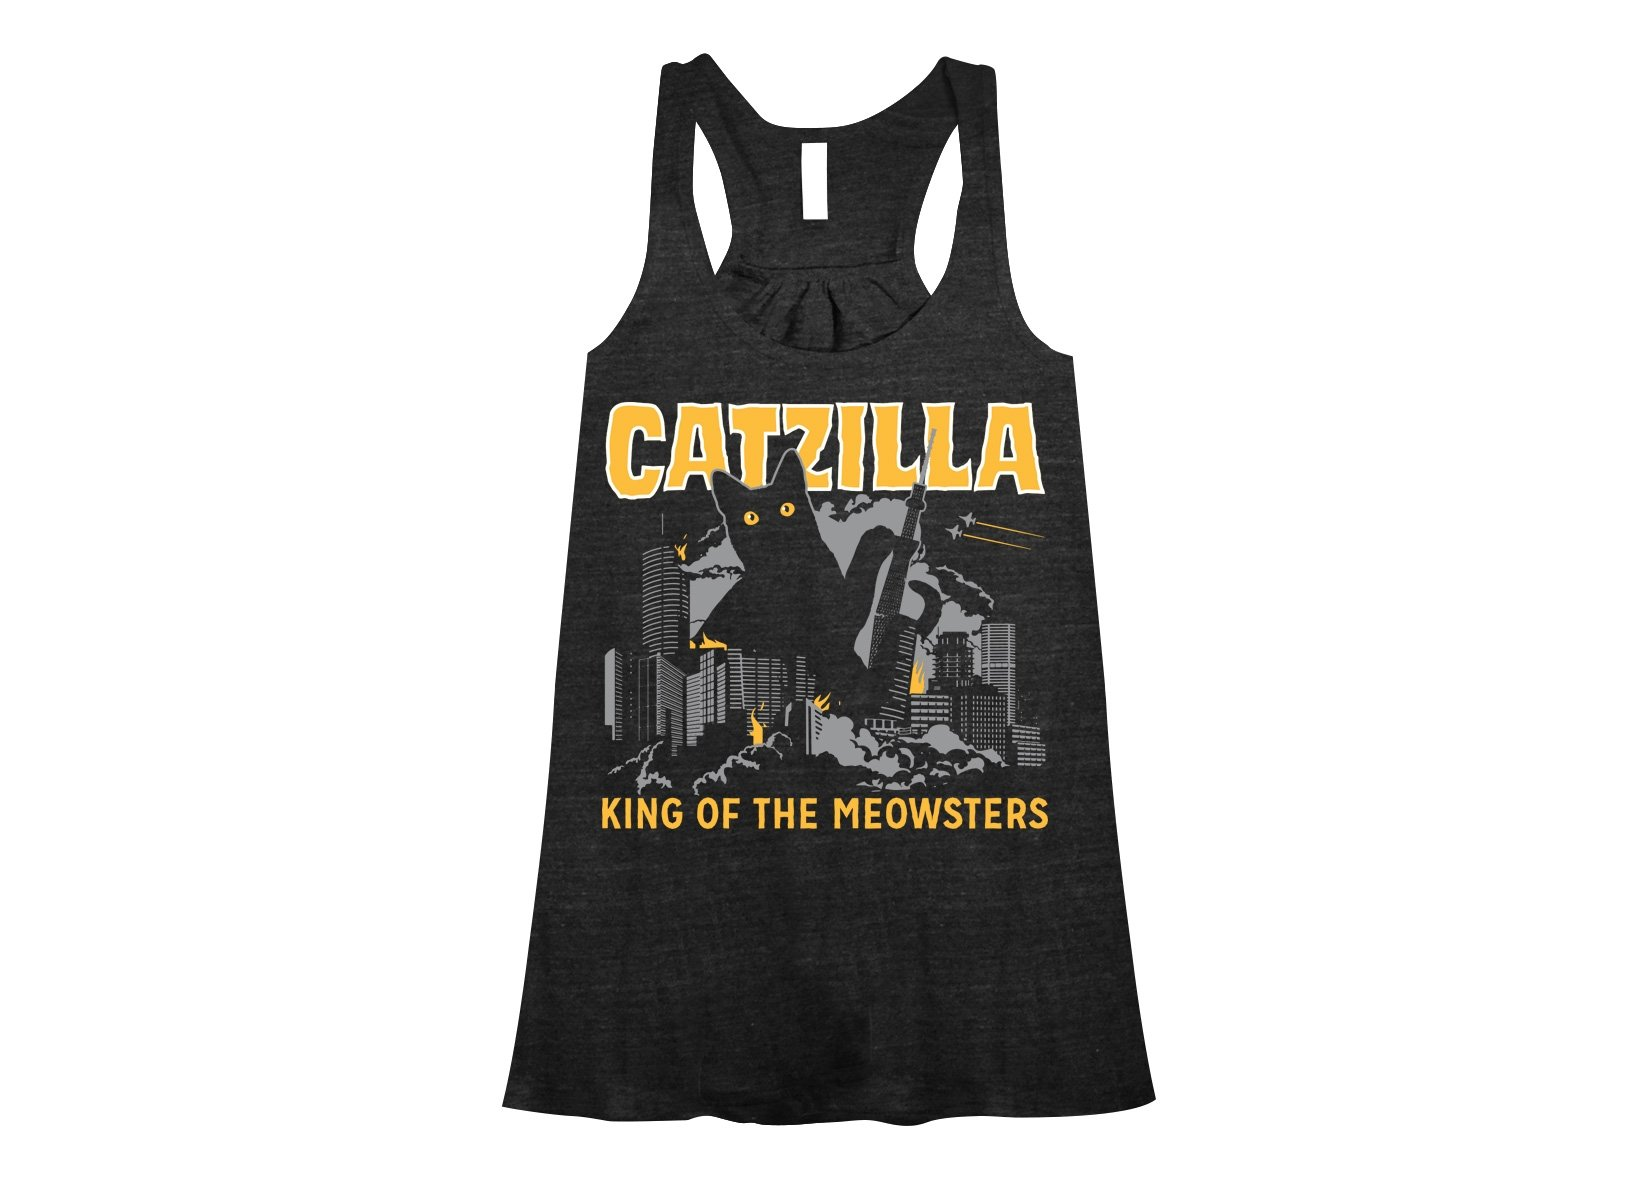 Catzilla on Womens Tanks T-Shirt